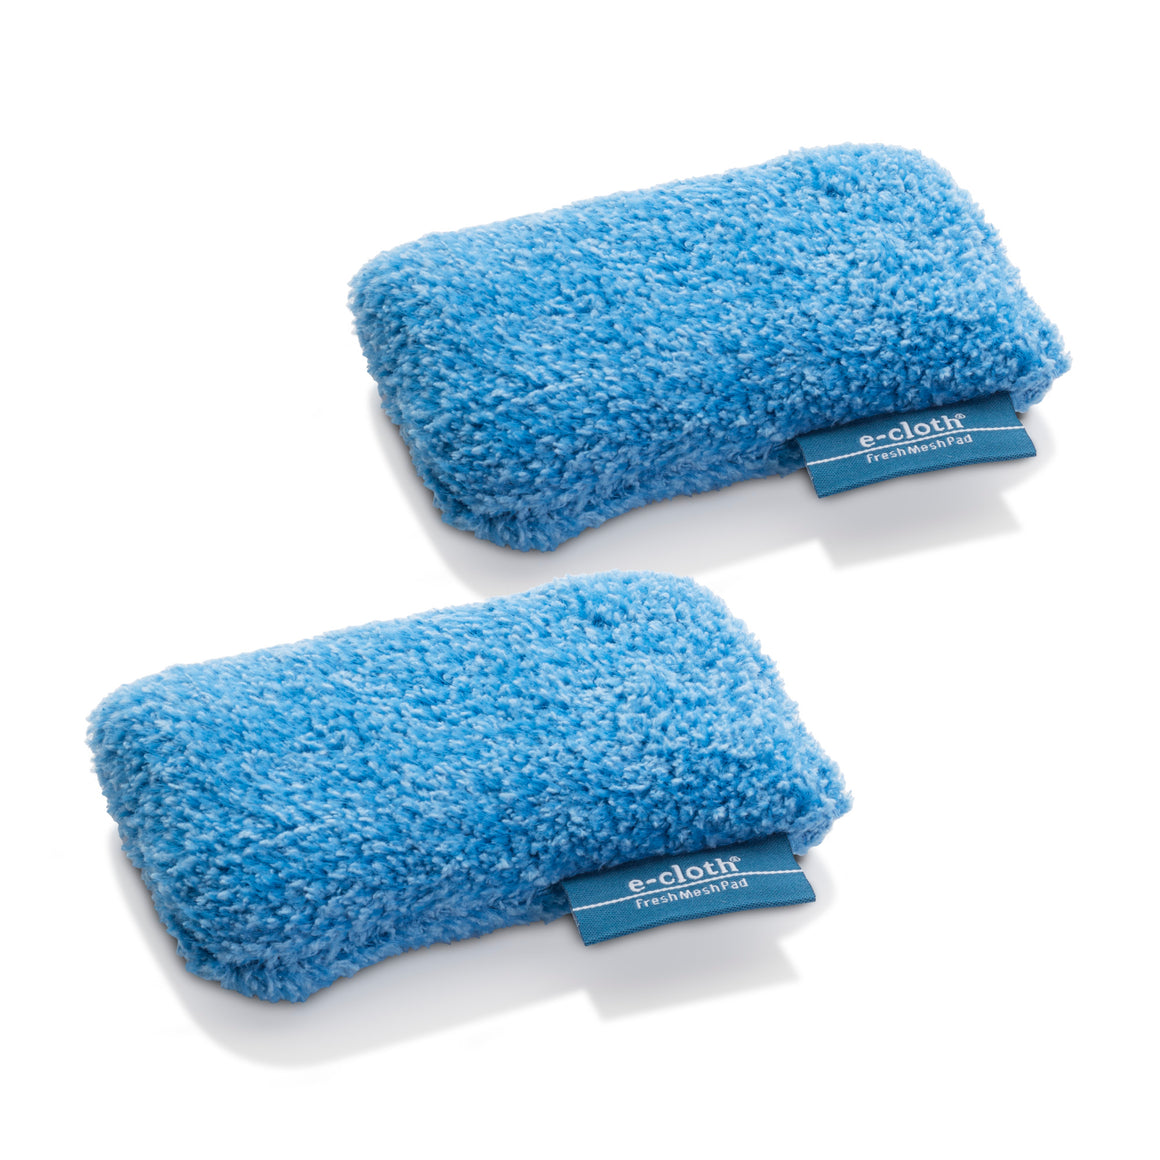 Fresh Mesh Cleaning Pads - Highly Absorbent and Fast Drying Sponge Alternative